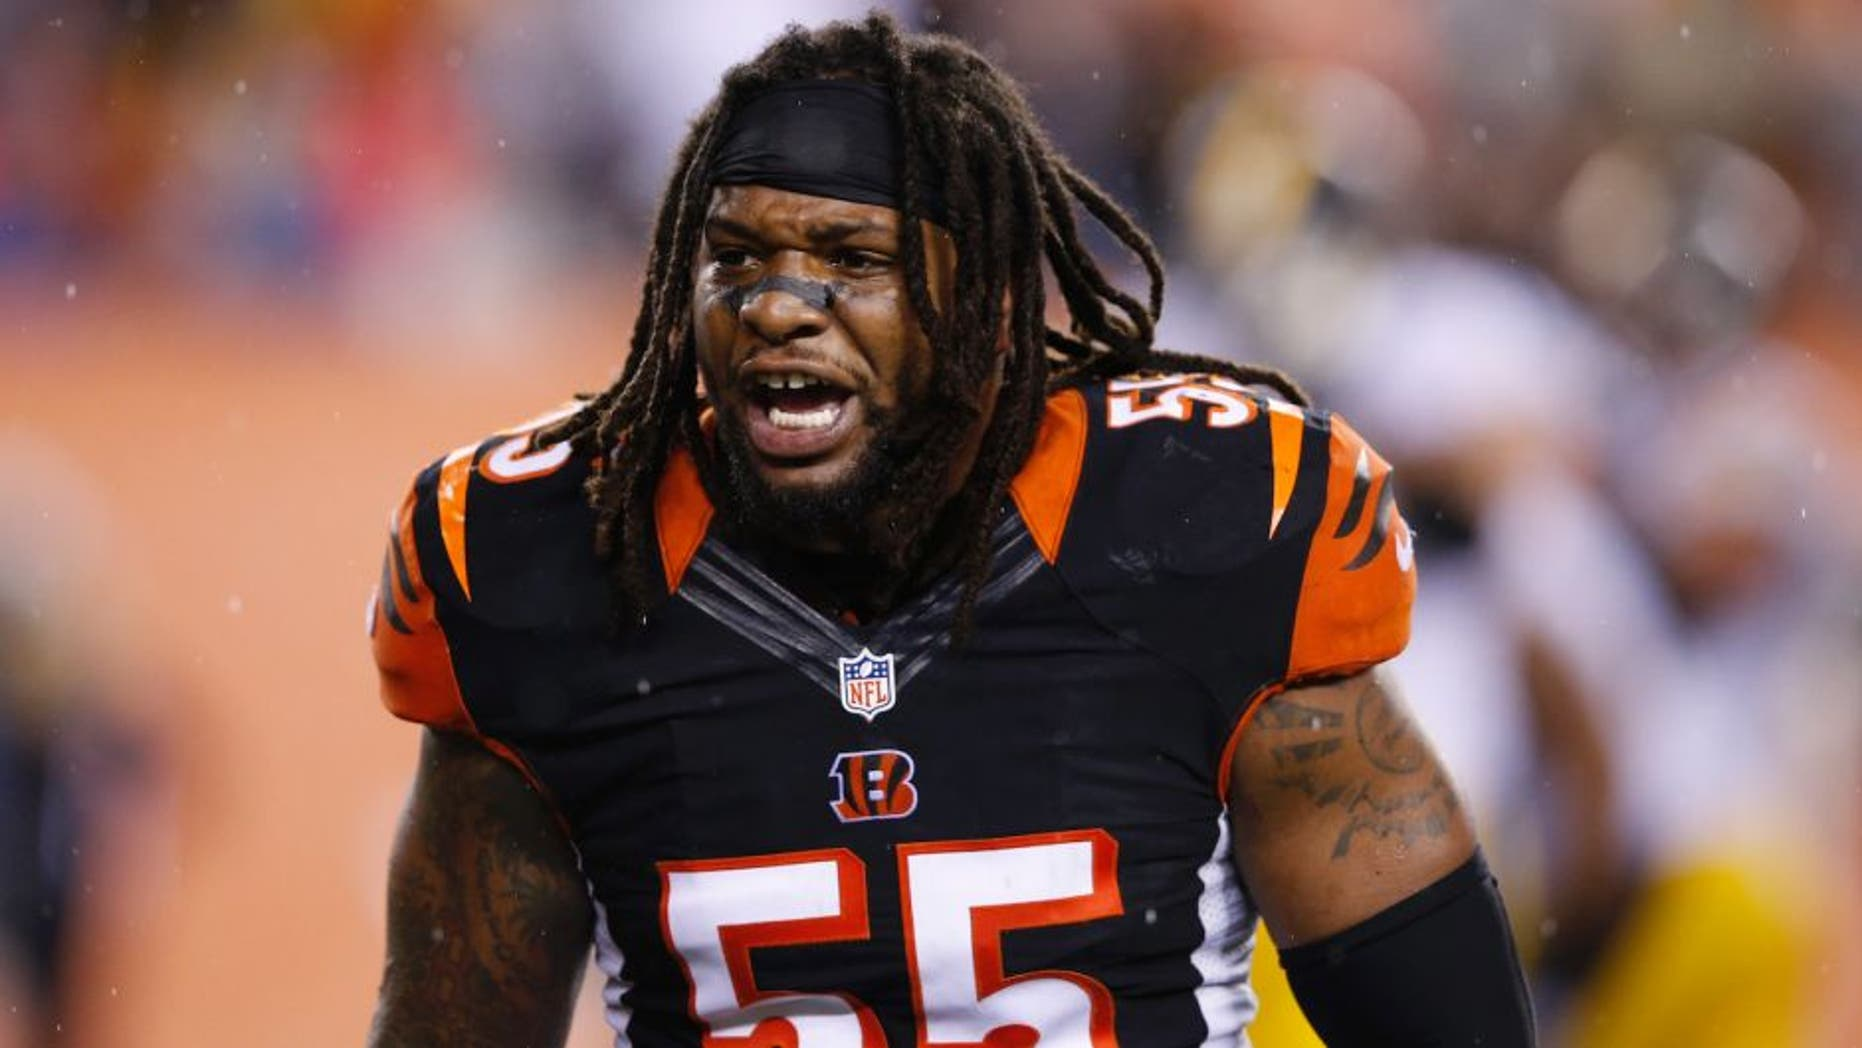 CINCINNATI, OH - JANUARY 9: Vontaze Burfict #55 of the Cincinnati Bengals argues in the second half of the AFC Wild Card Playoff game against the Pittsburgh Steelers at Paul Brown Stadium on January 9, 2016 in Cincinnati, Ohio. The Steelers defeated the Bengals 18-16. (Photo by Joe Robbins/Getty Images)